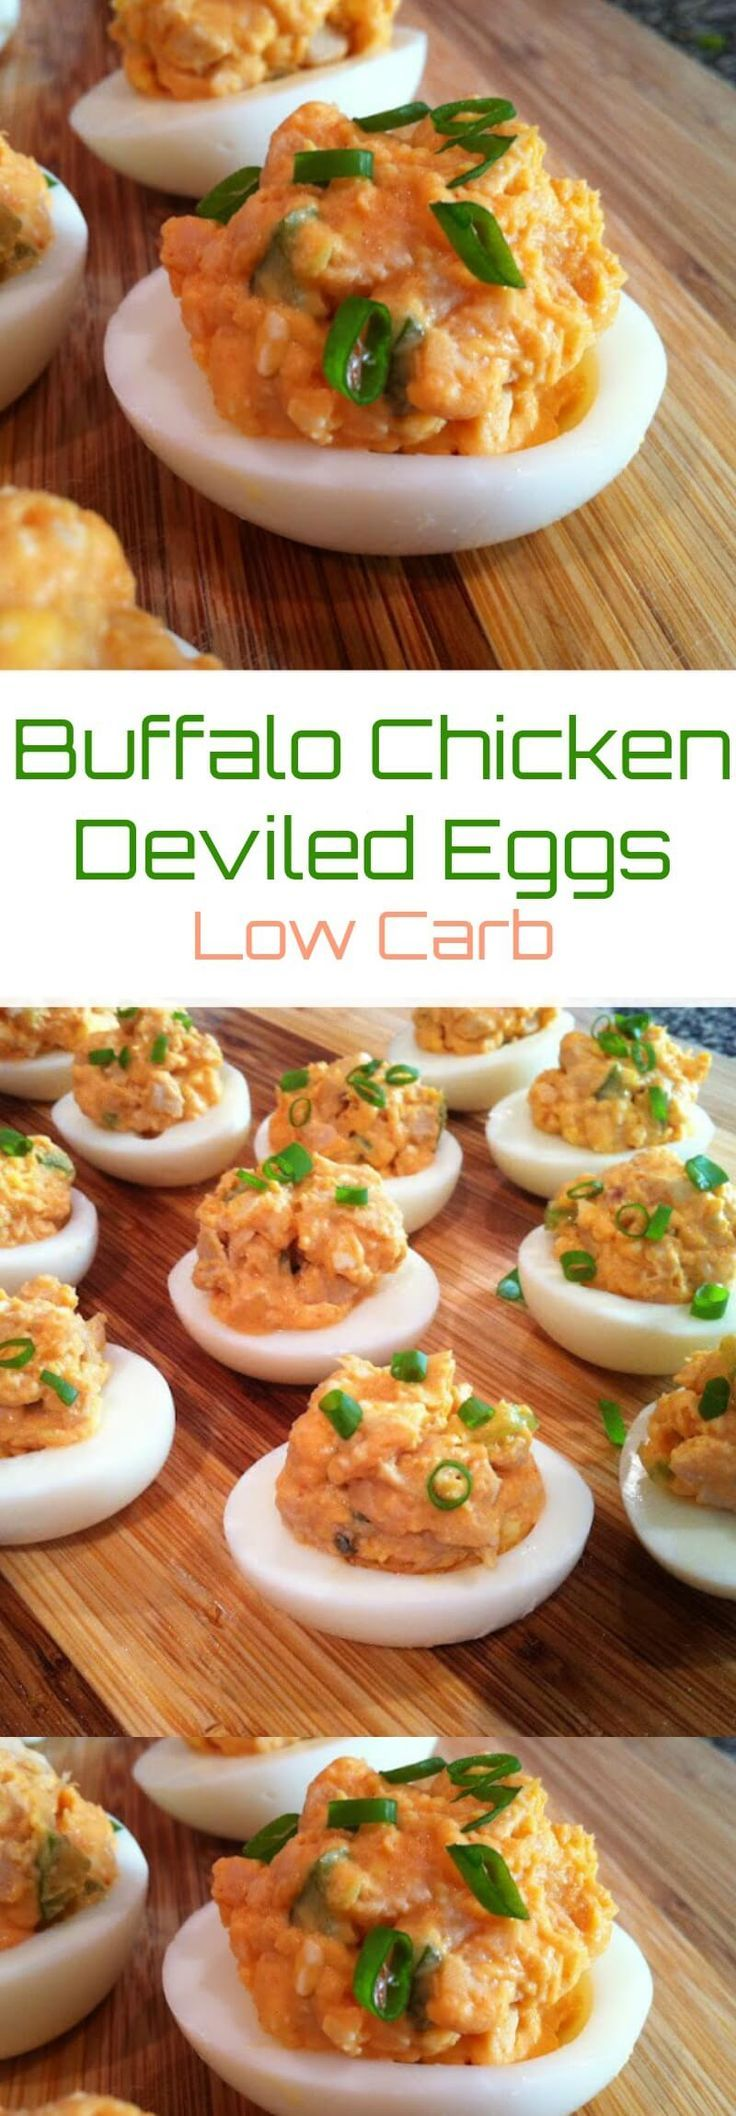 Buffalo Chicken Deviled Eggs | Peace Love and Low Carb